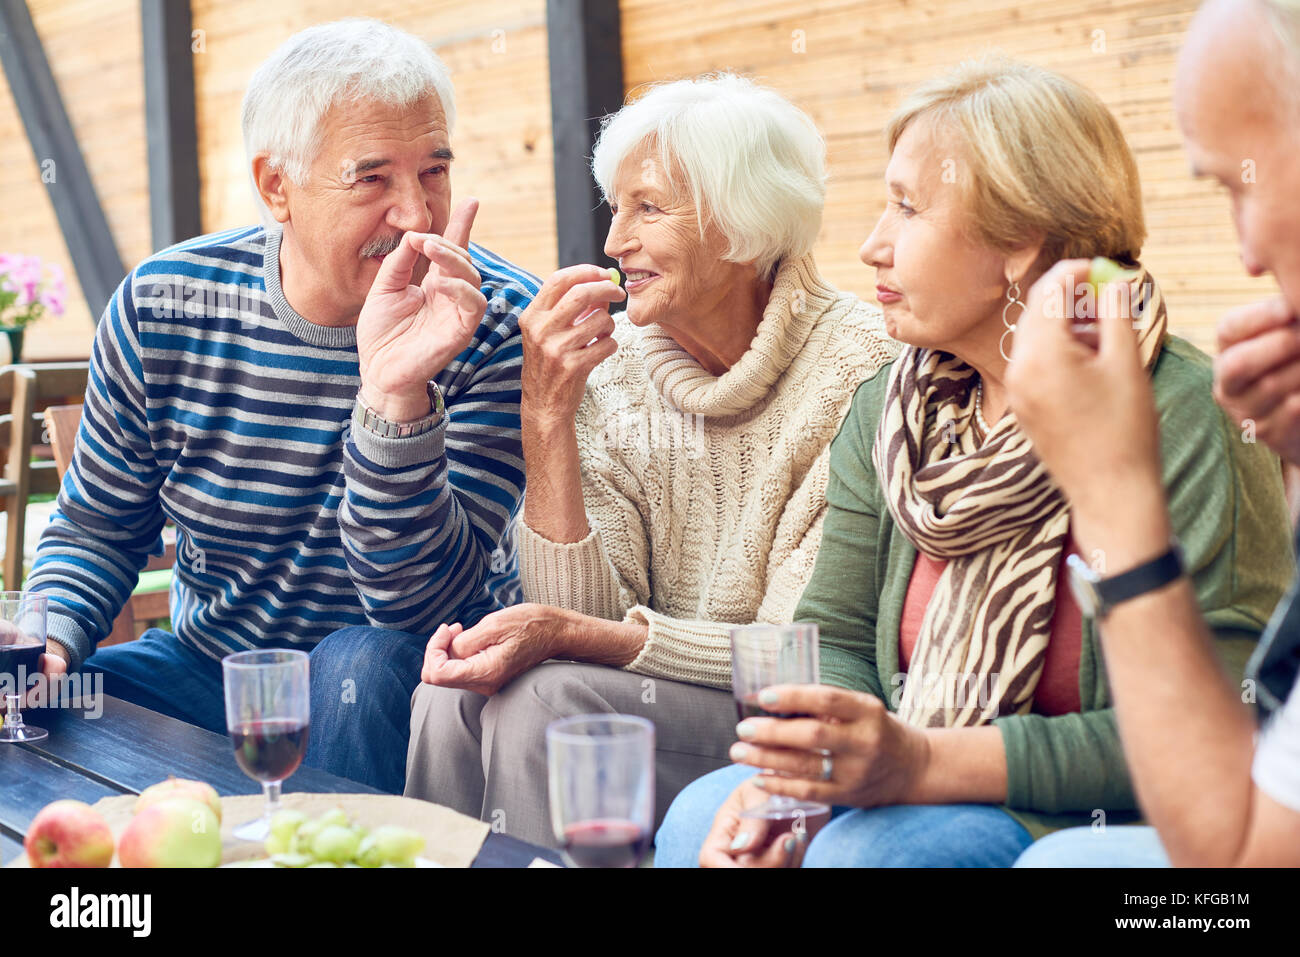 Backyard Party of Aged Friends - Stock Image